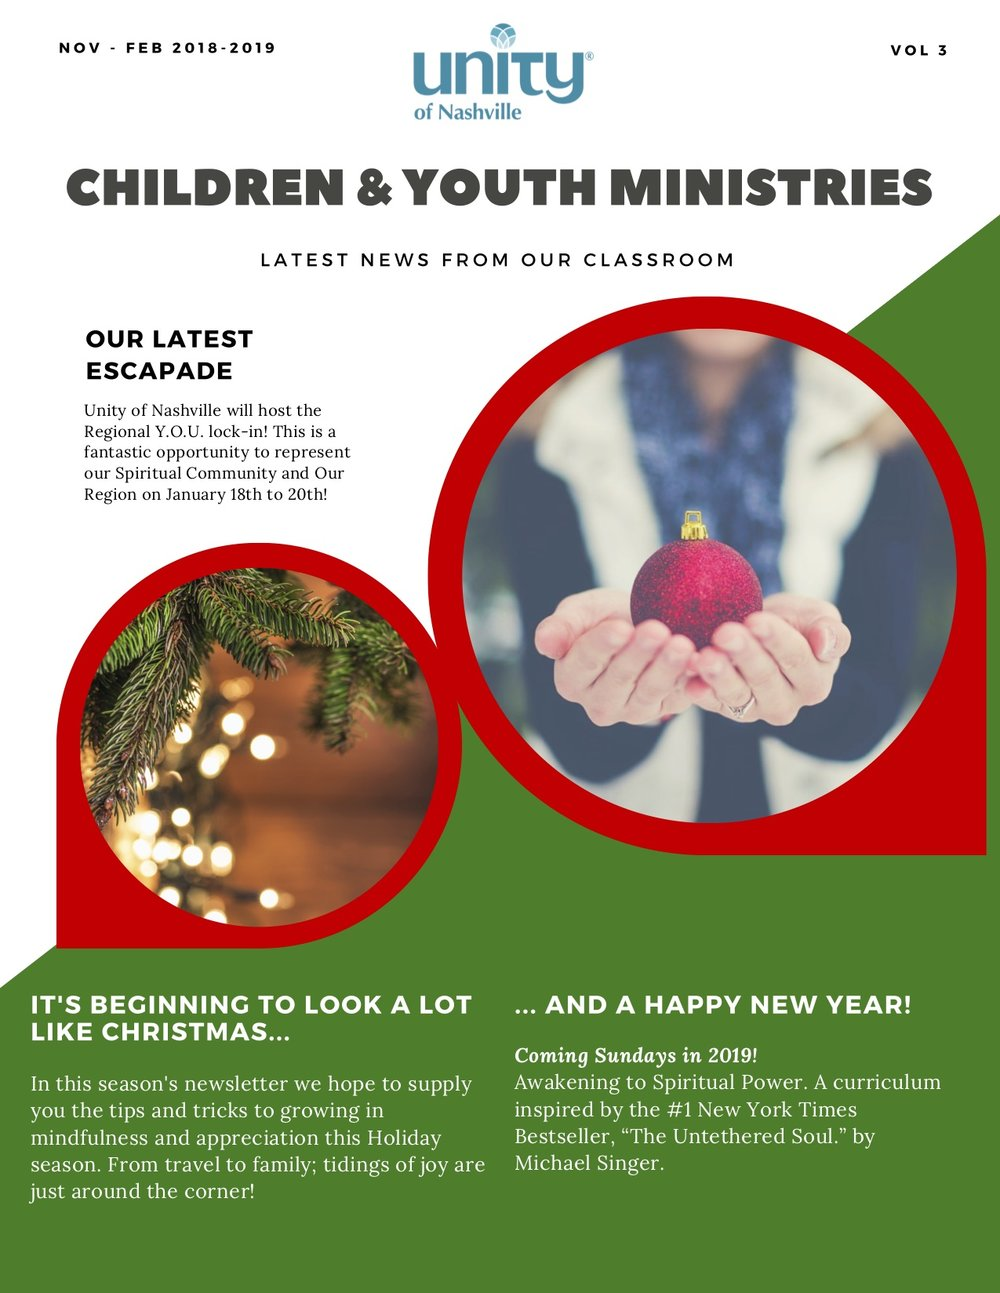 Youth newsletter Nov-Feb 2018%2F19 (4)_1.jpg